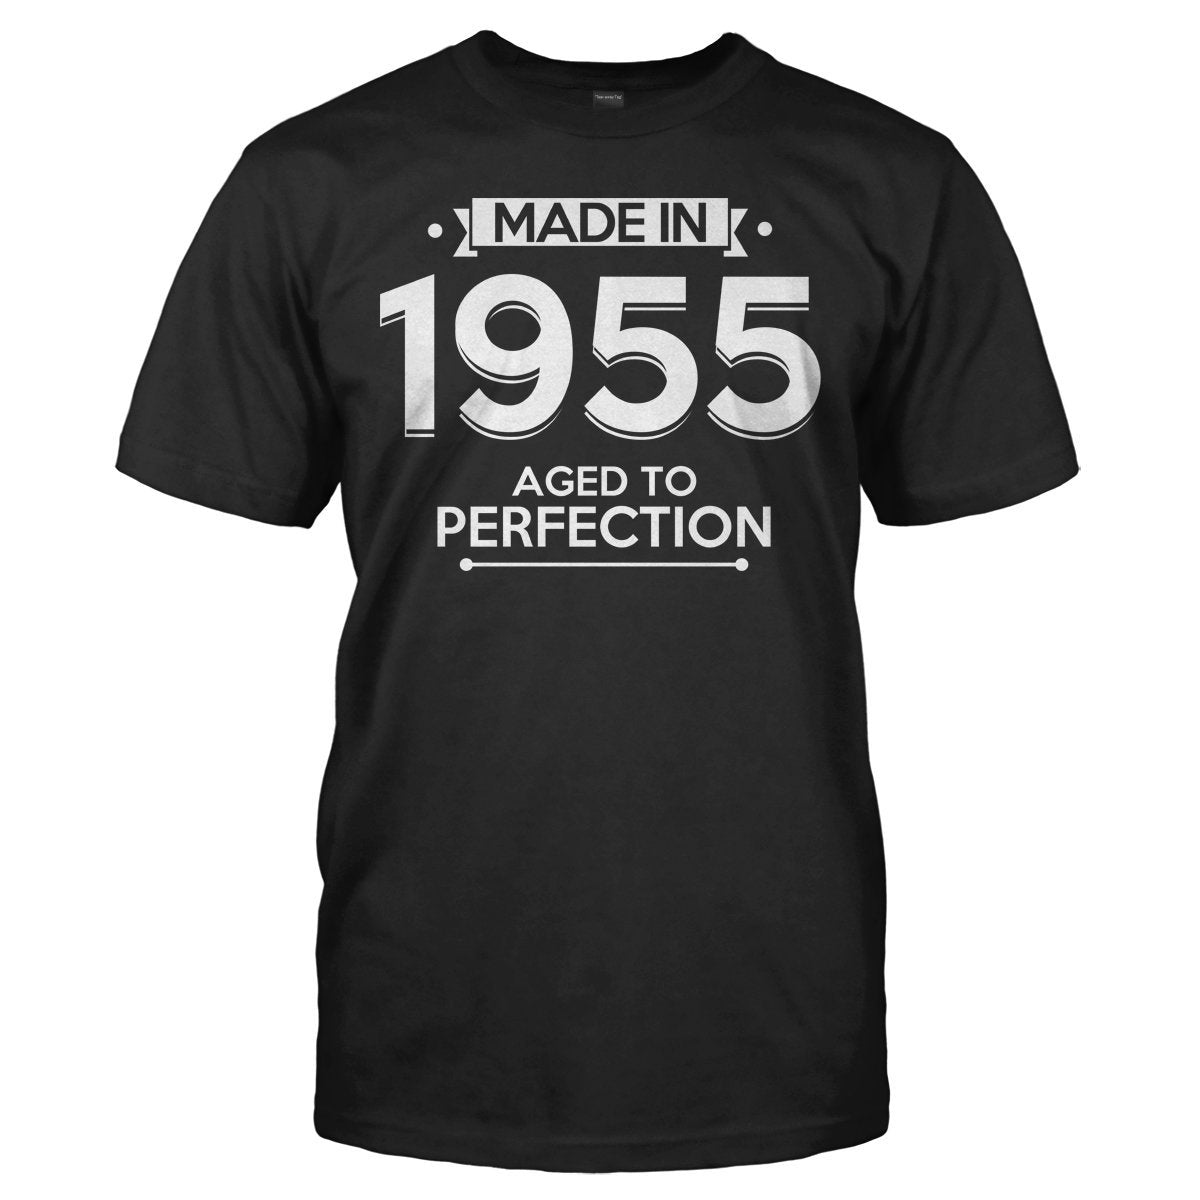 Made in 1955. Aged to Perfection - T Shirt